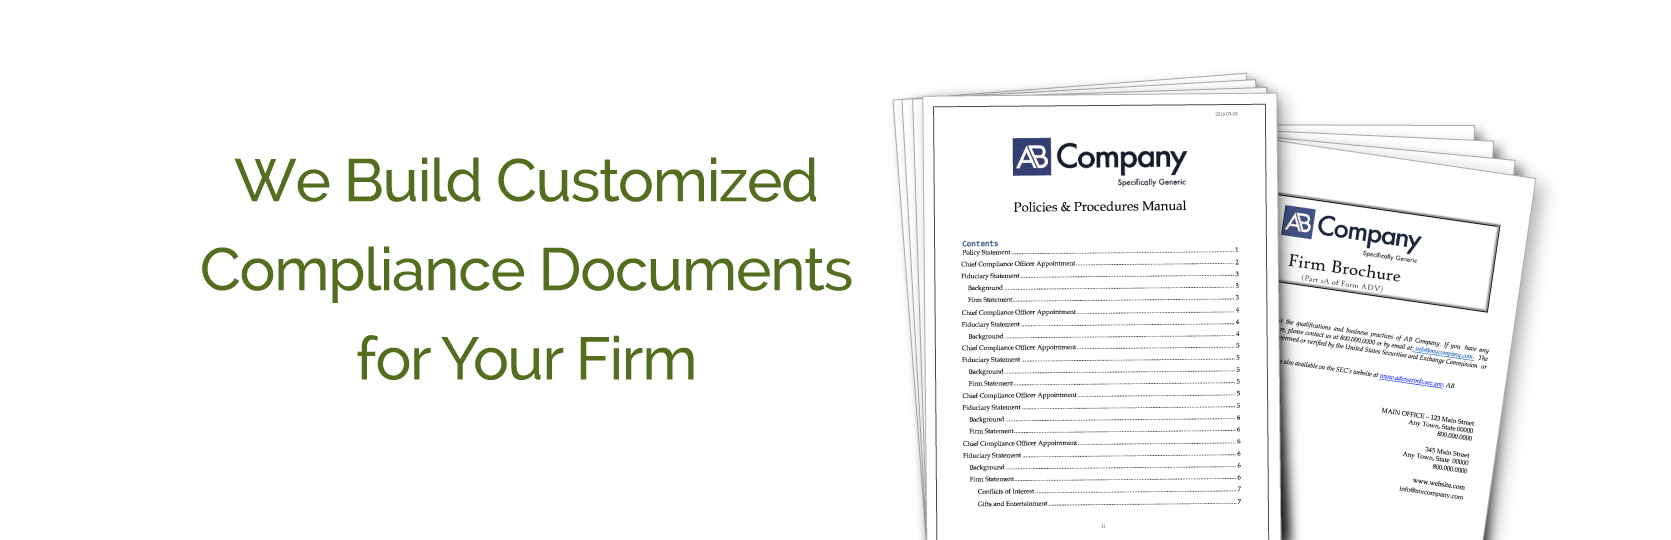 Customized policies and procedures and Form ADV creation